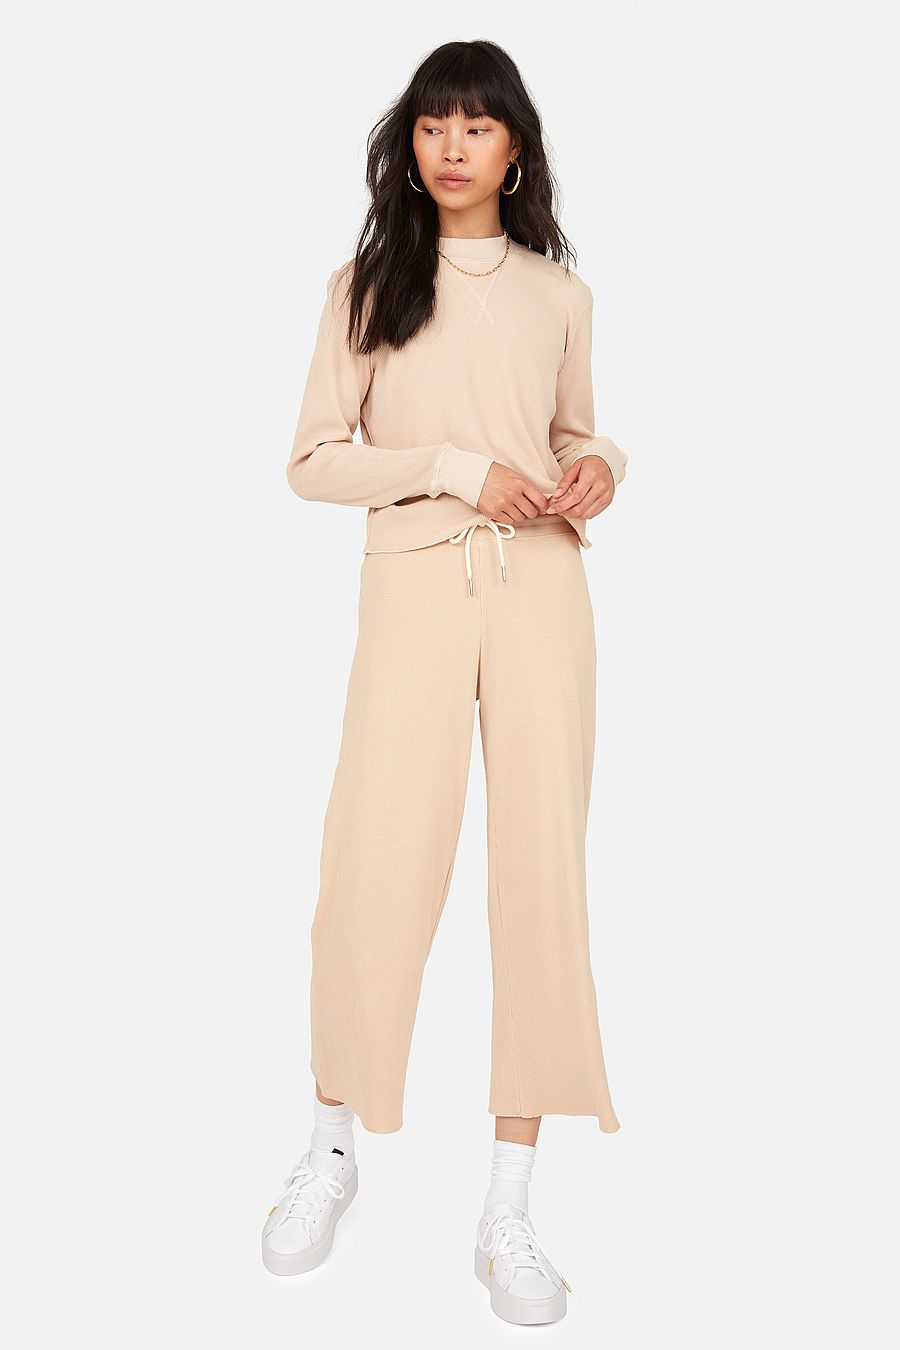 MATE The Label Organic Thermal Boxy Crop - LATTE